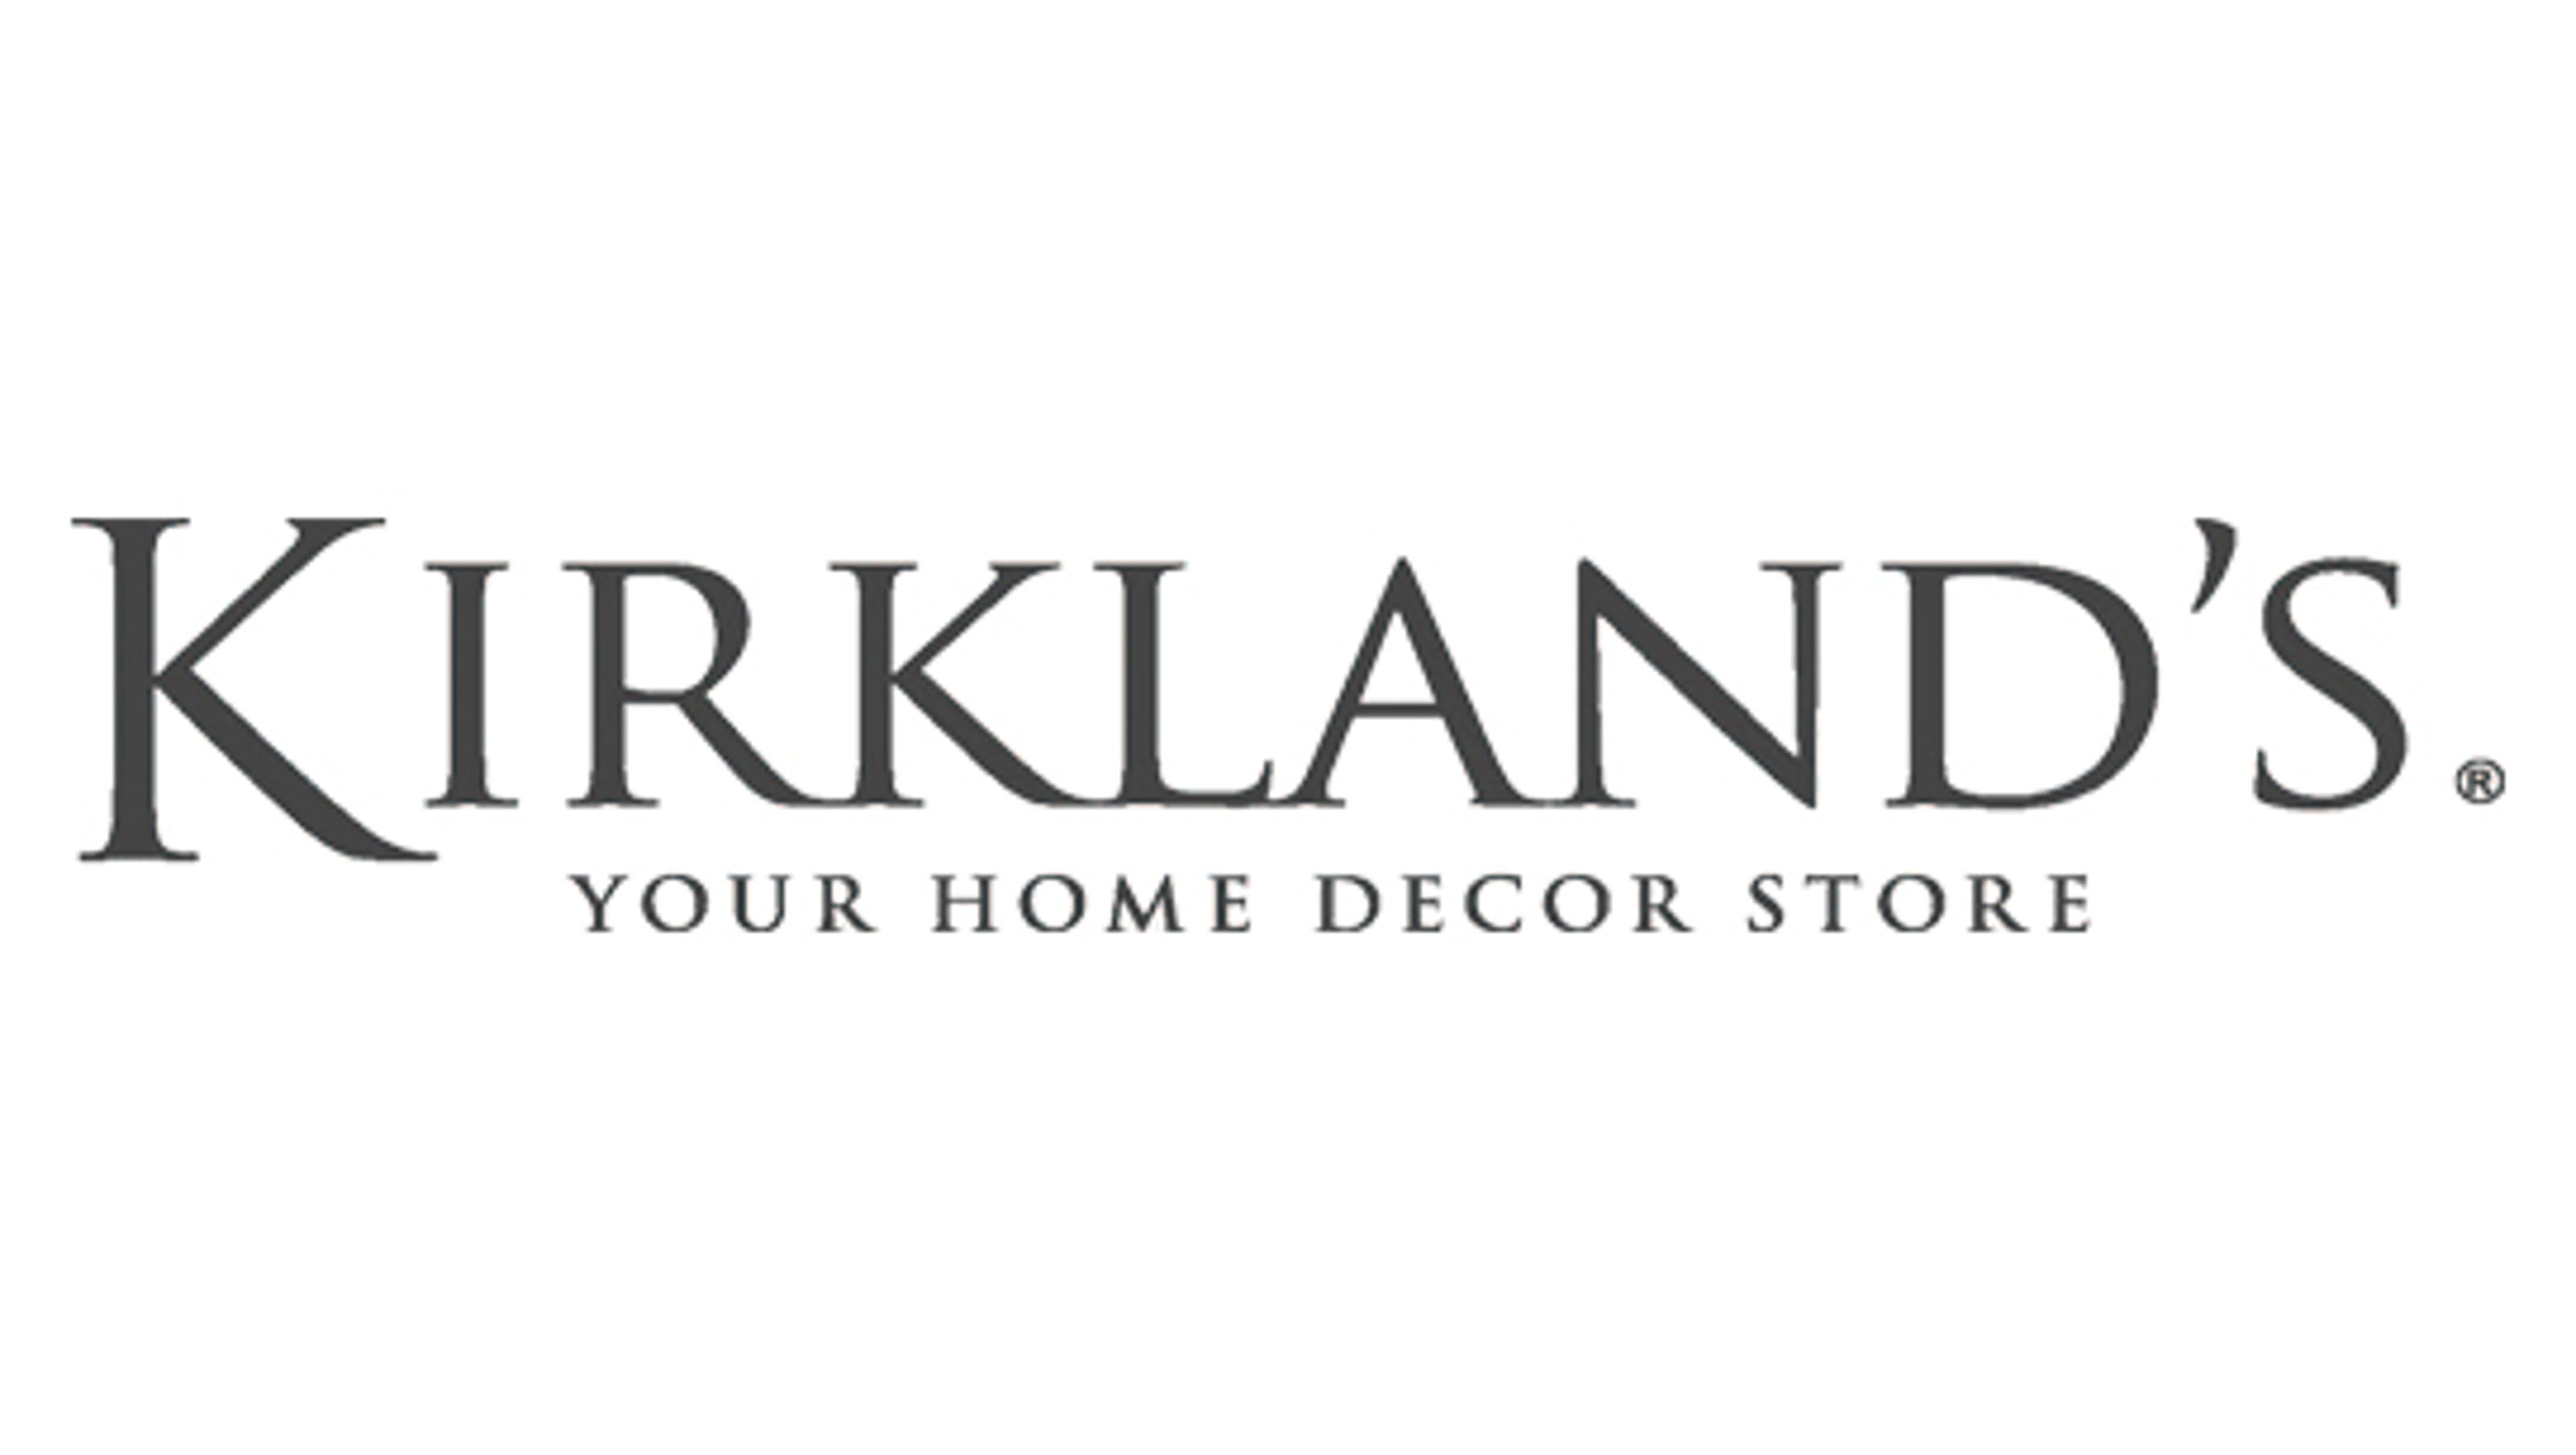 Home Decor Retailer Kirkland S Coming To Lake Lorraine Development